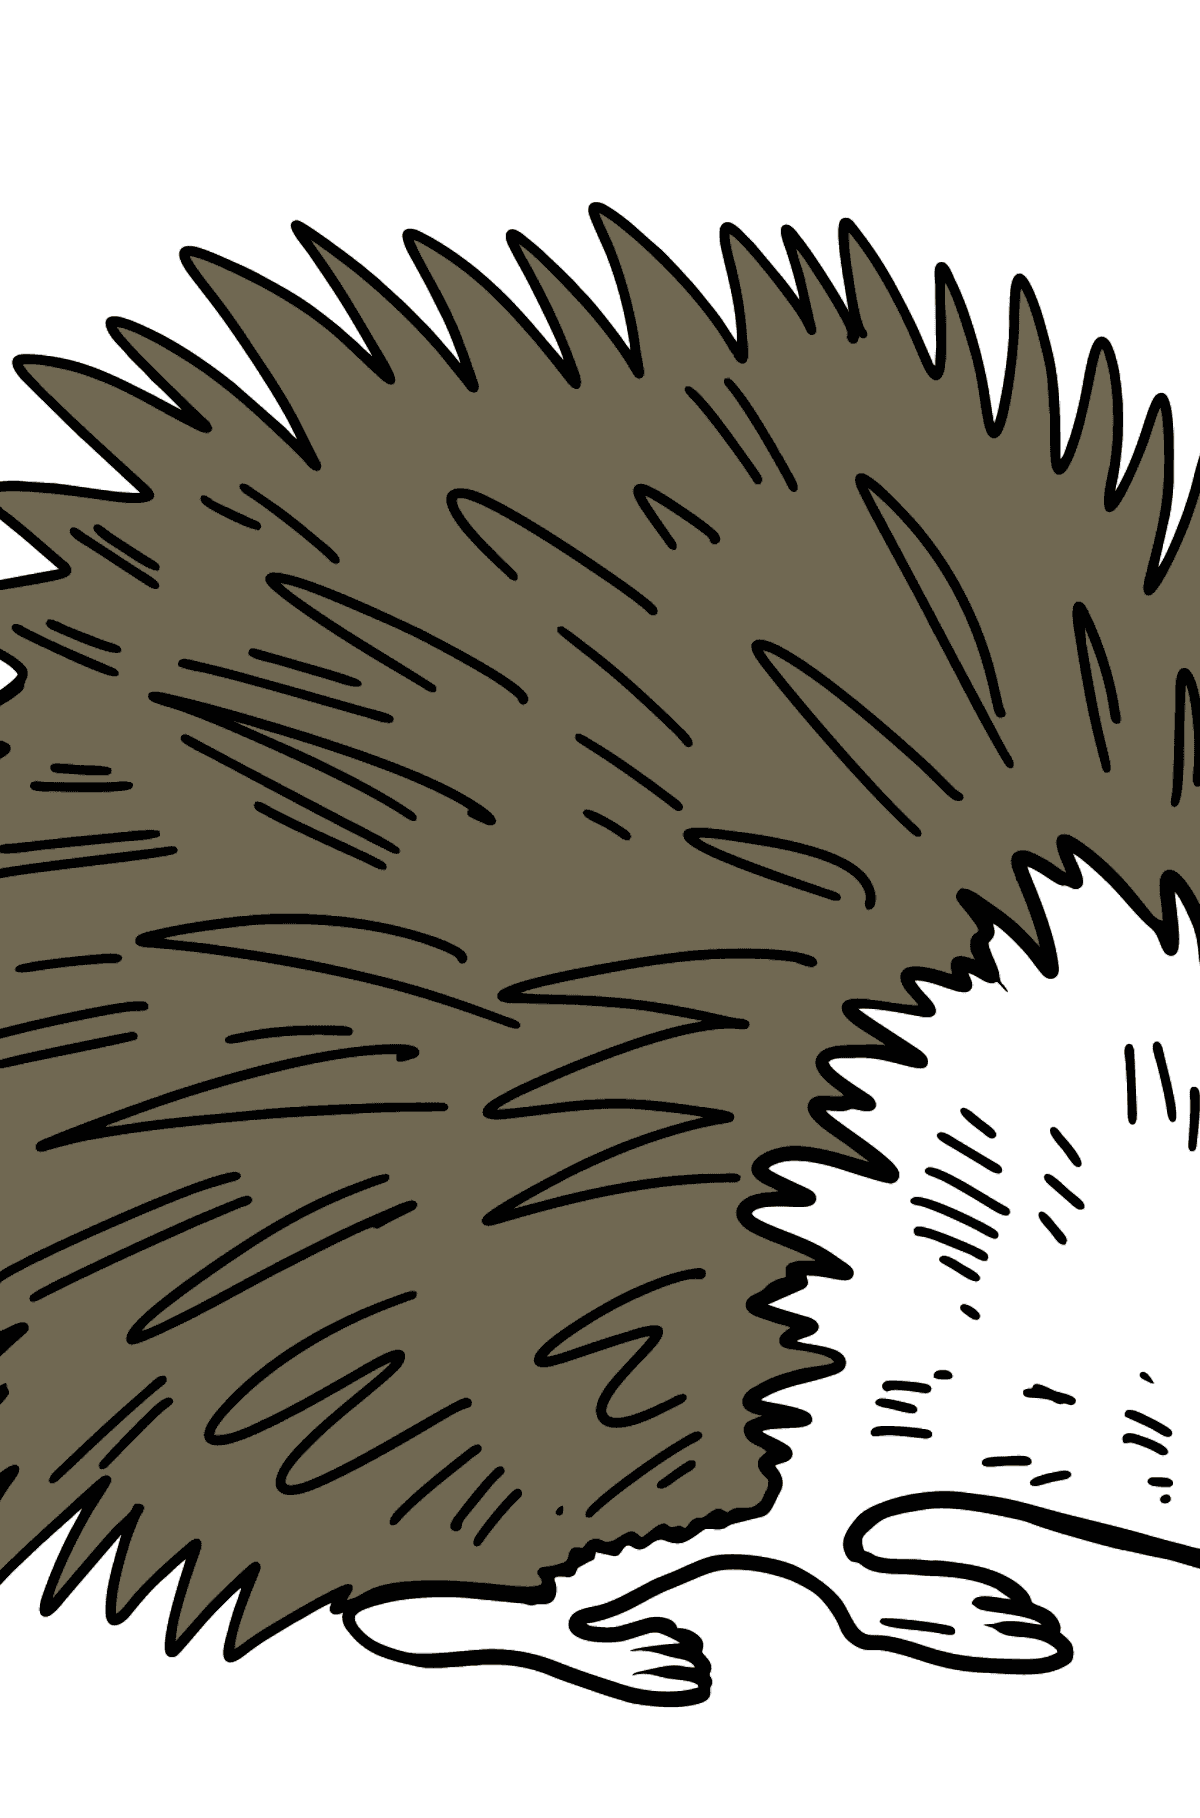 Porcupine coloring page - Coloring Pages for Kids